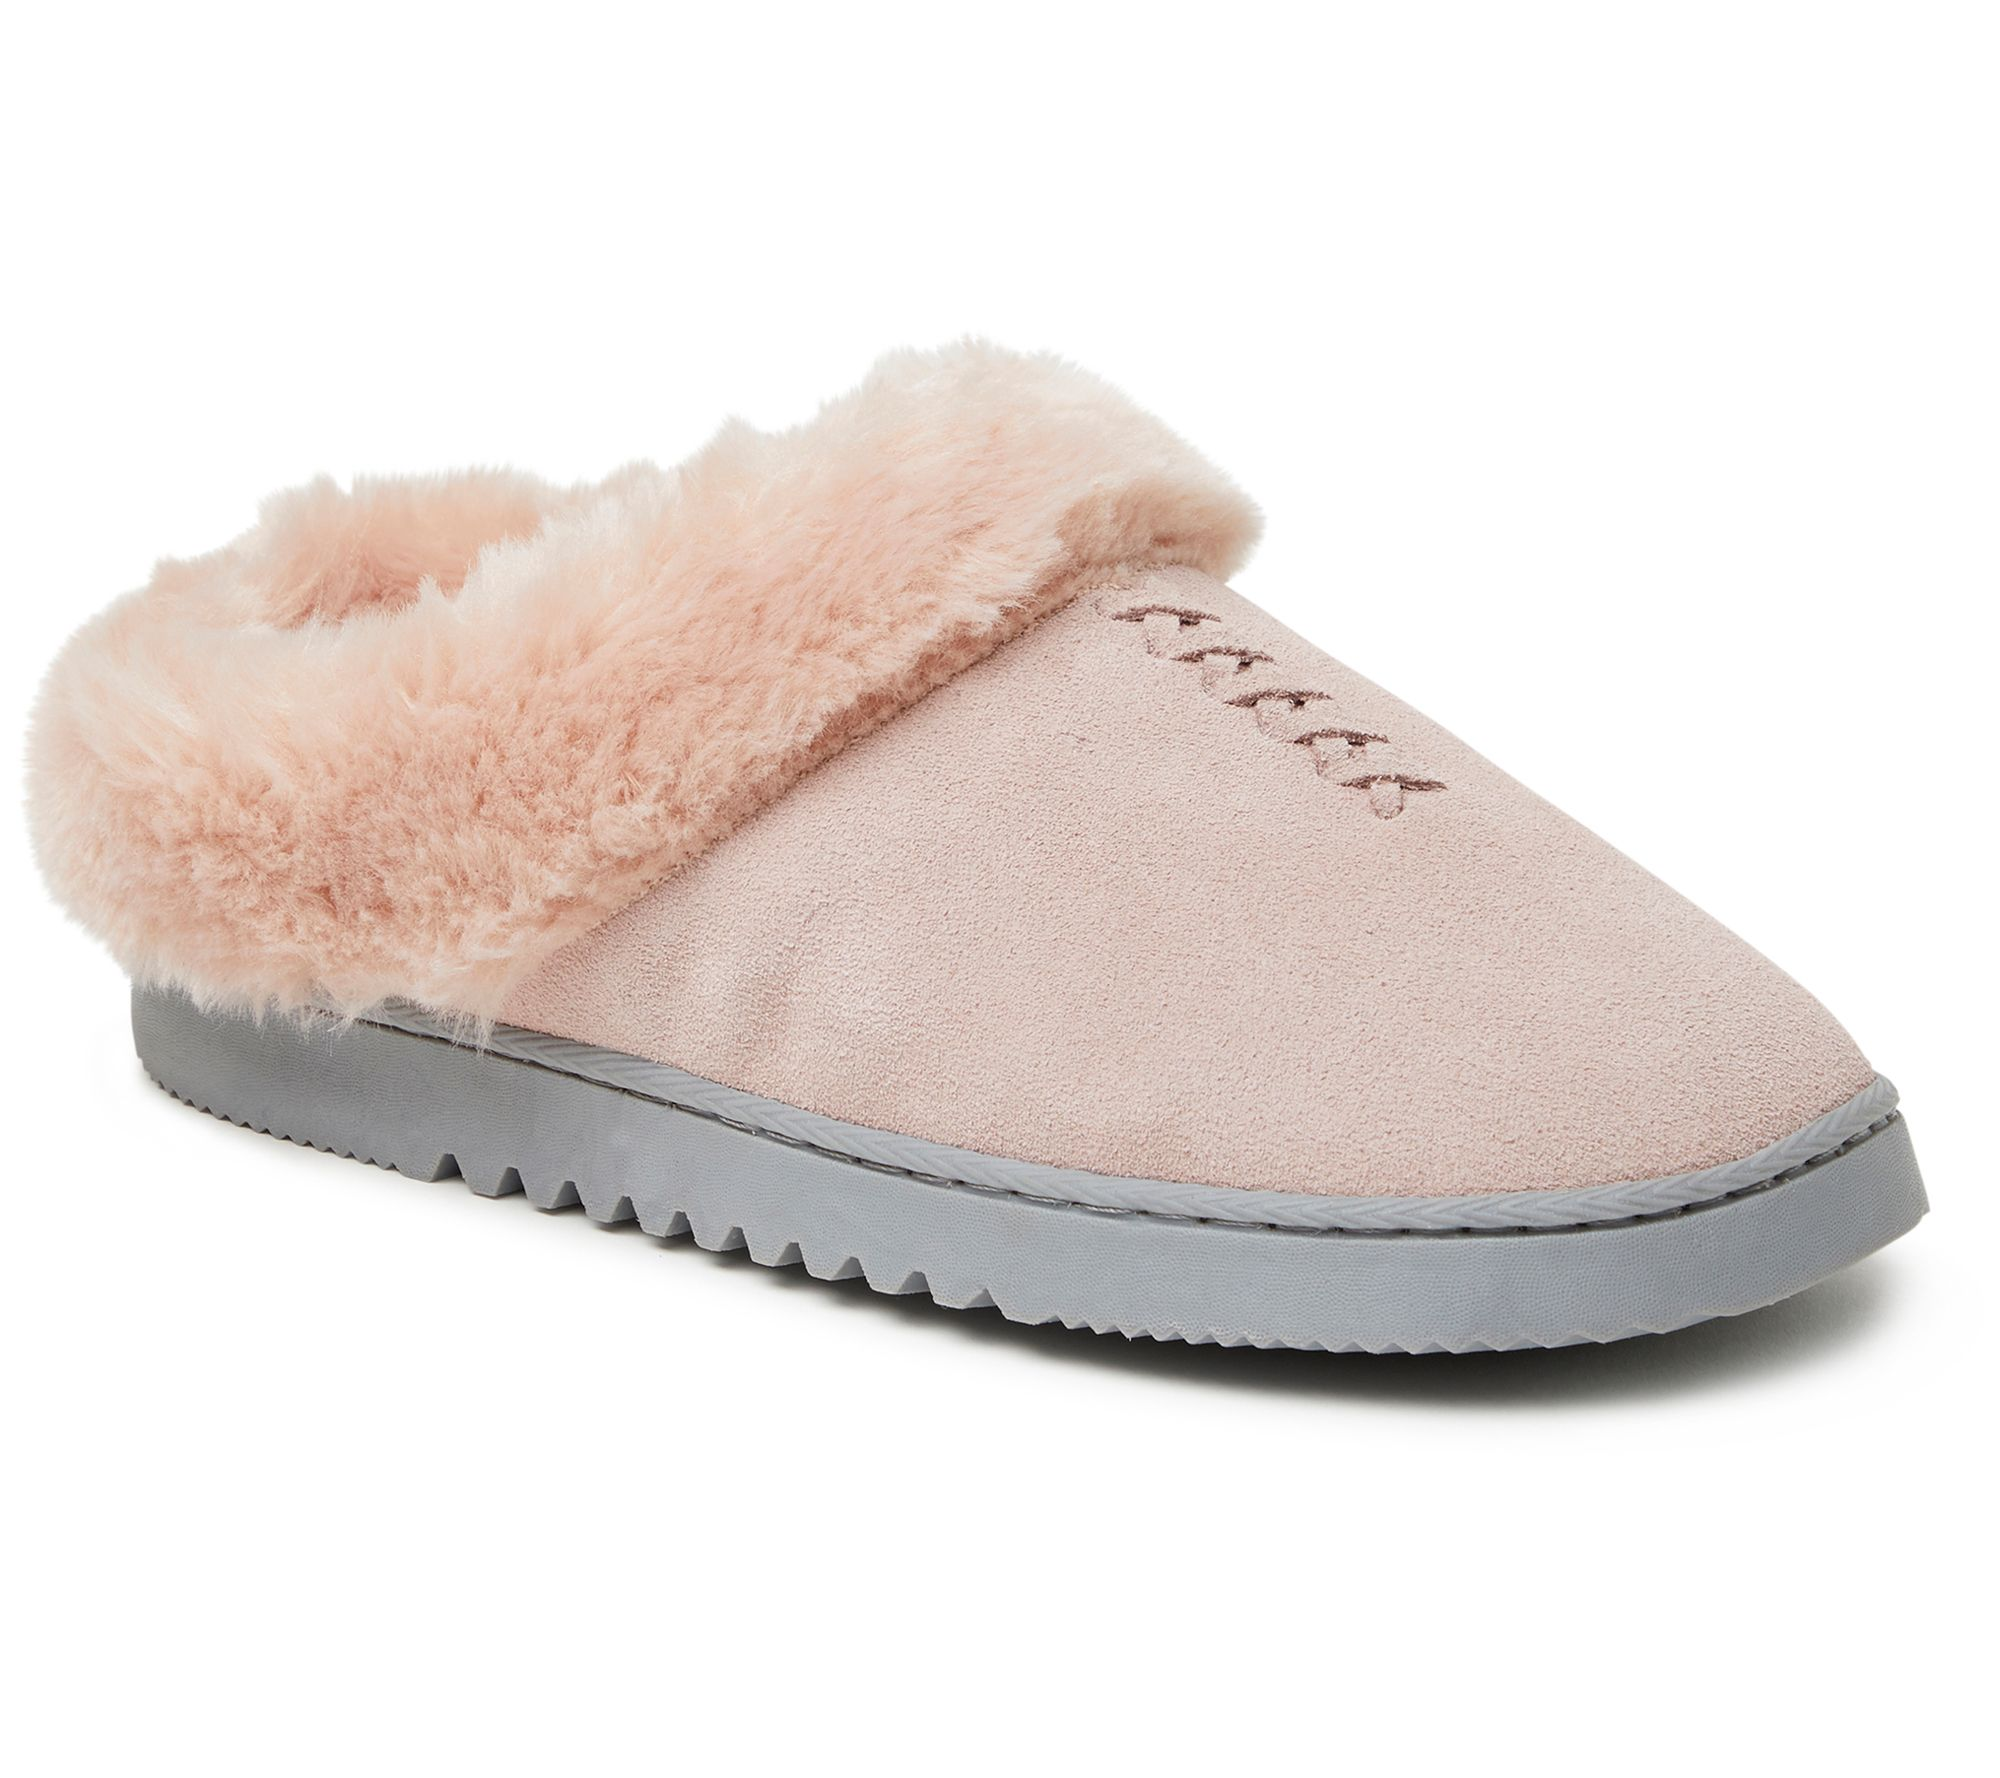 Keep your feet warm with suede clog slippers